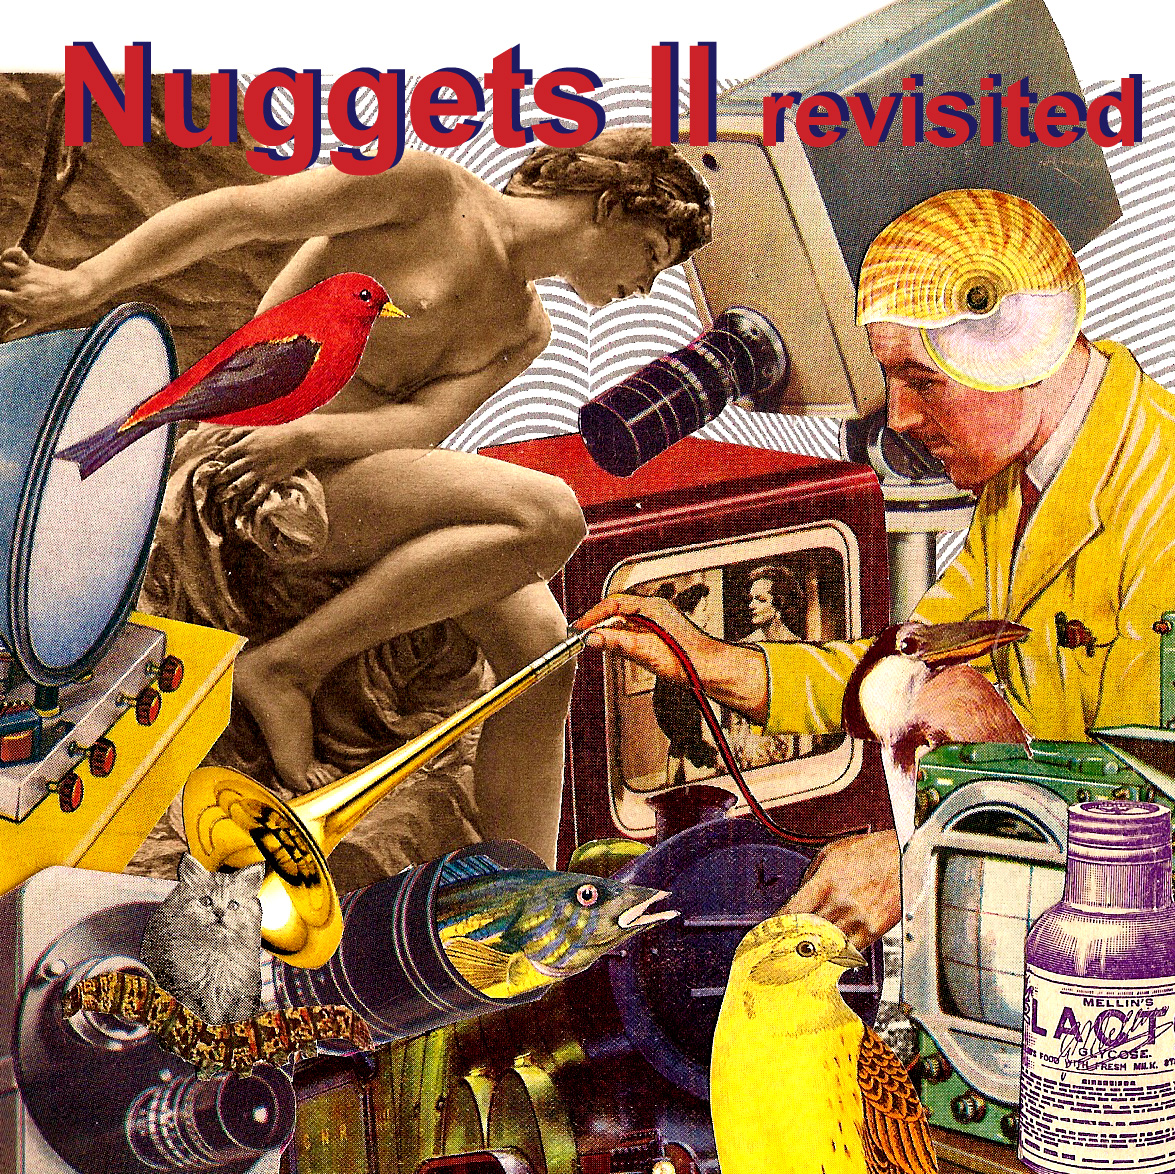 Nuggets Box Set: THE ACTIVE LISTENER: Nuggets II Revisited Track Premiere